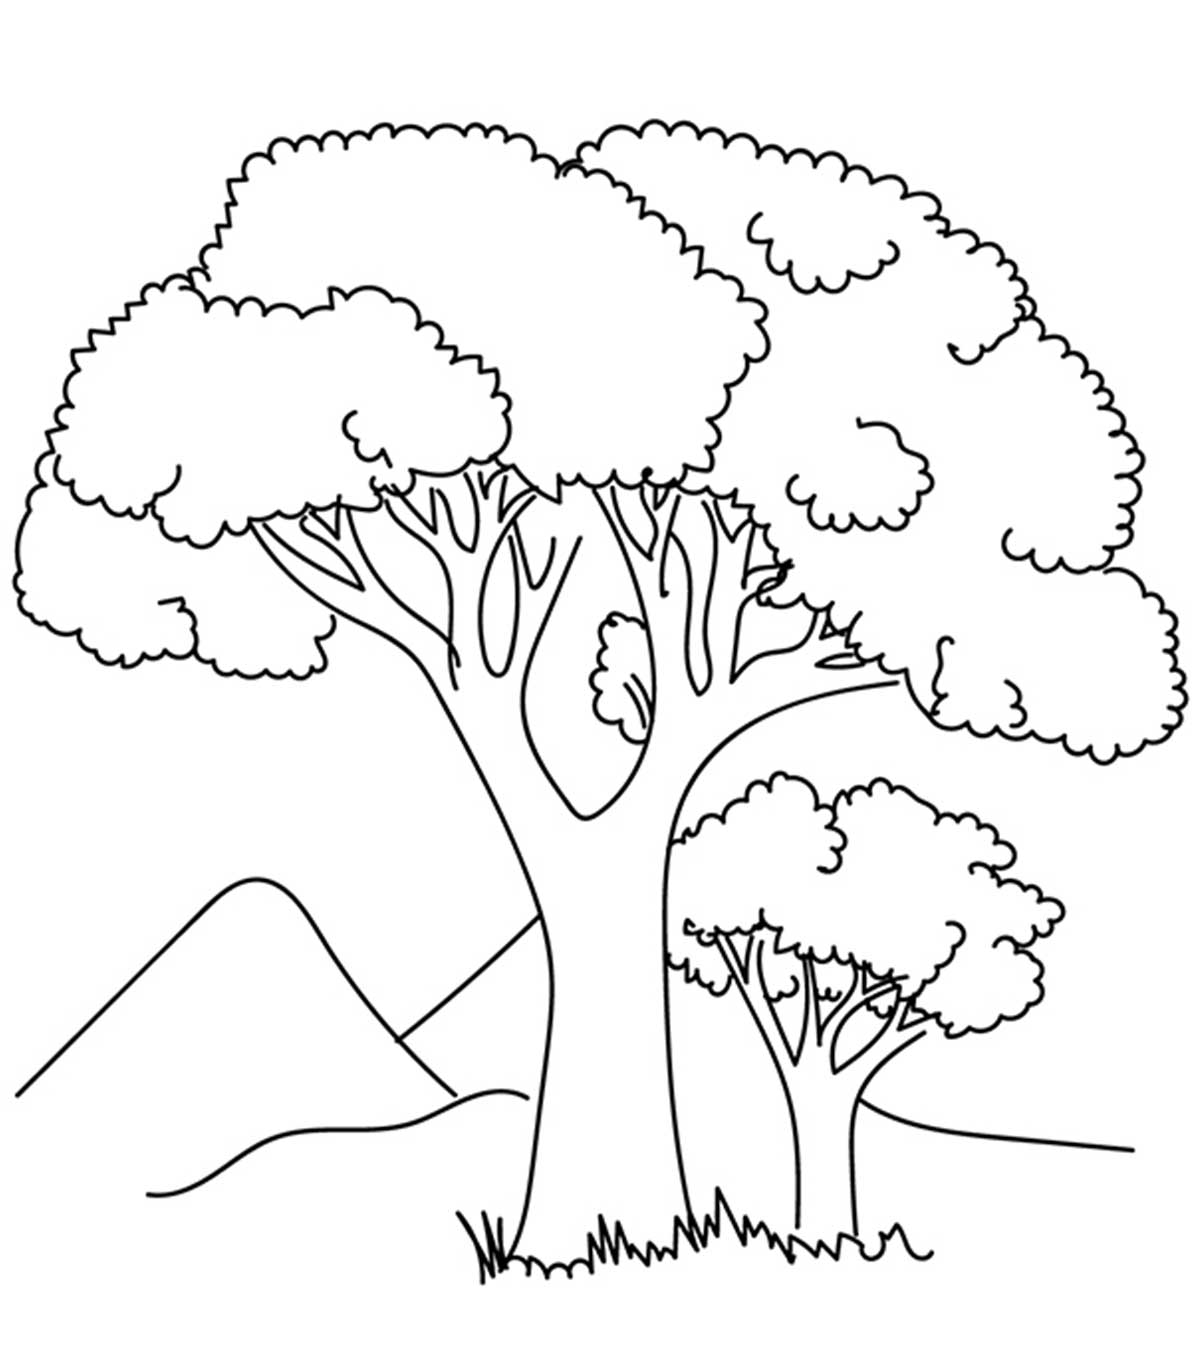 Tree Of Life Coloring Pages - Coloring Home